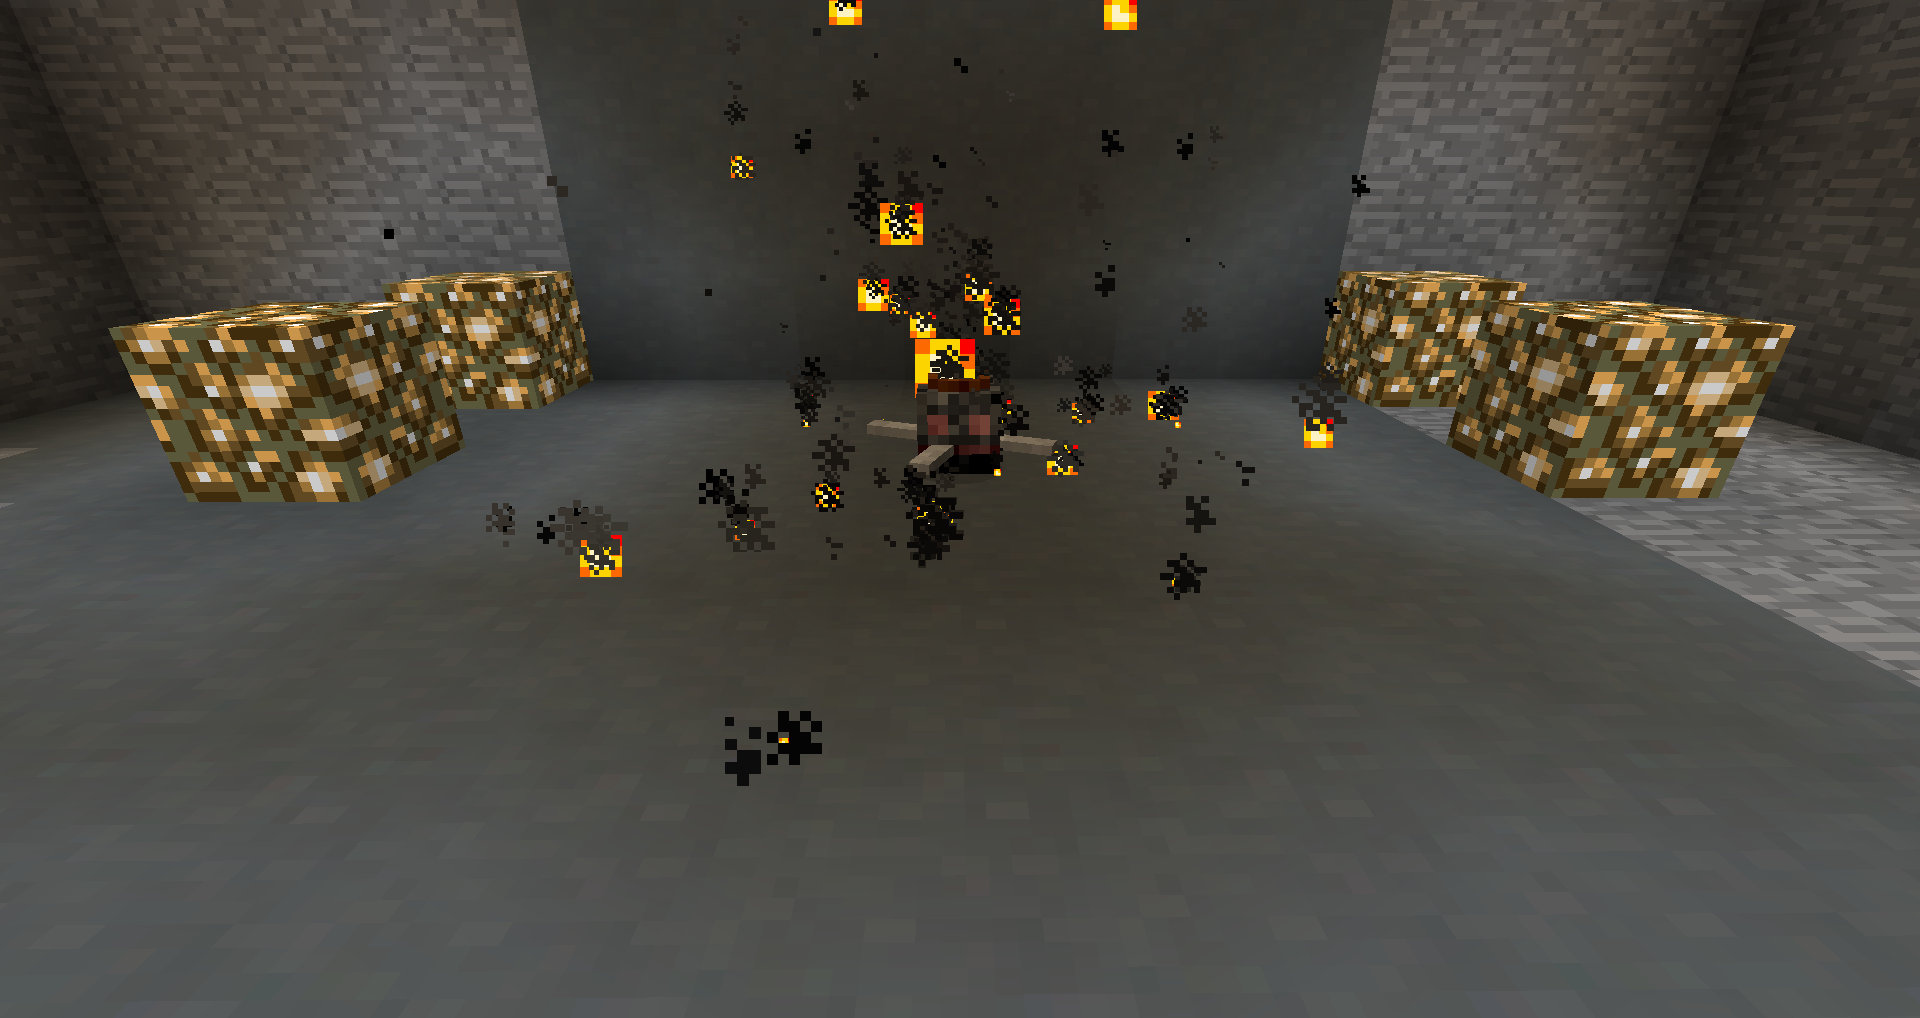 76c5b  rWPyuJA Weird Mobs Screenshots